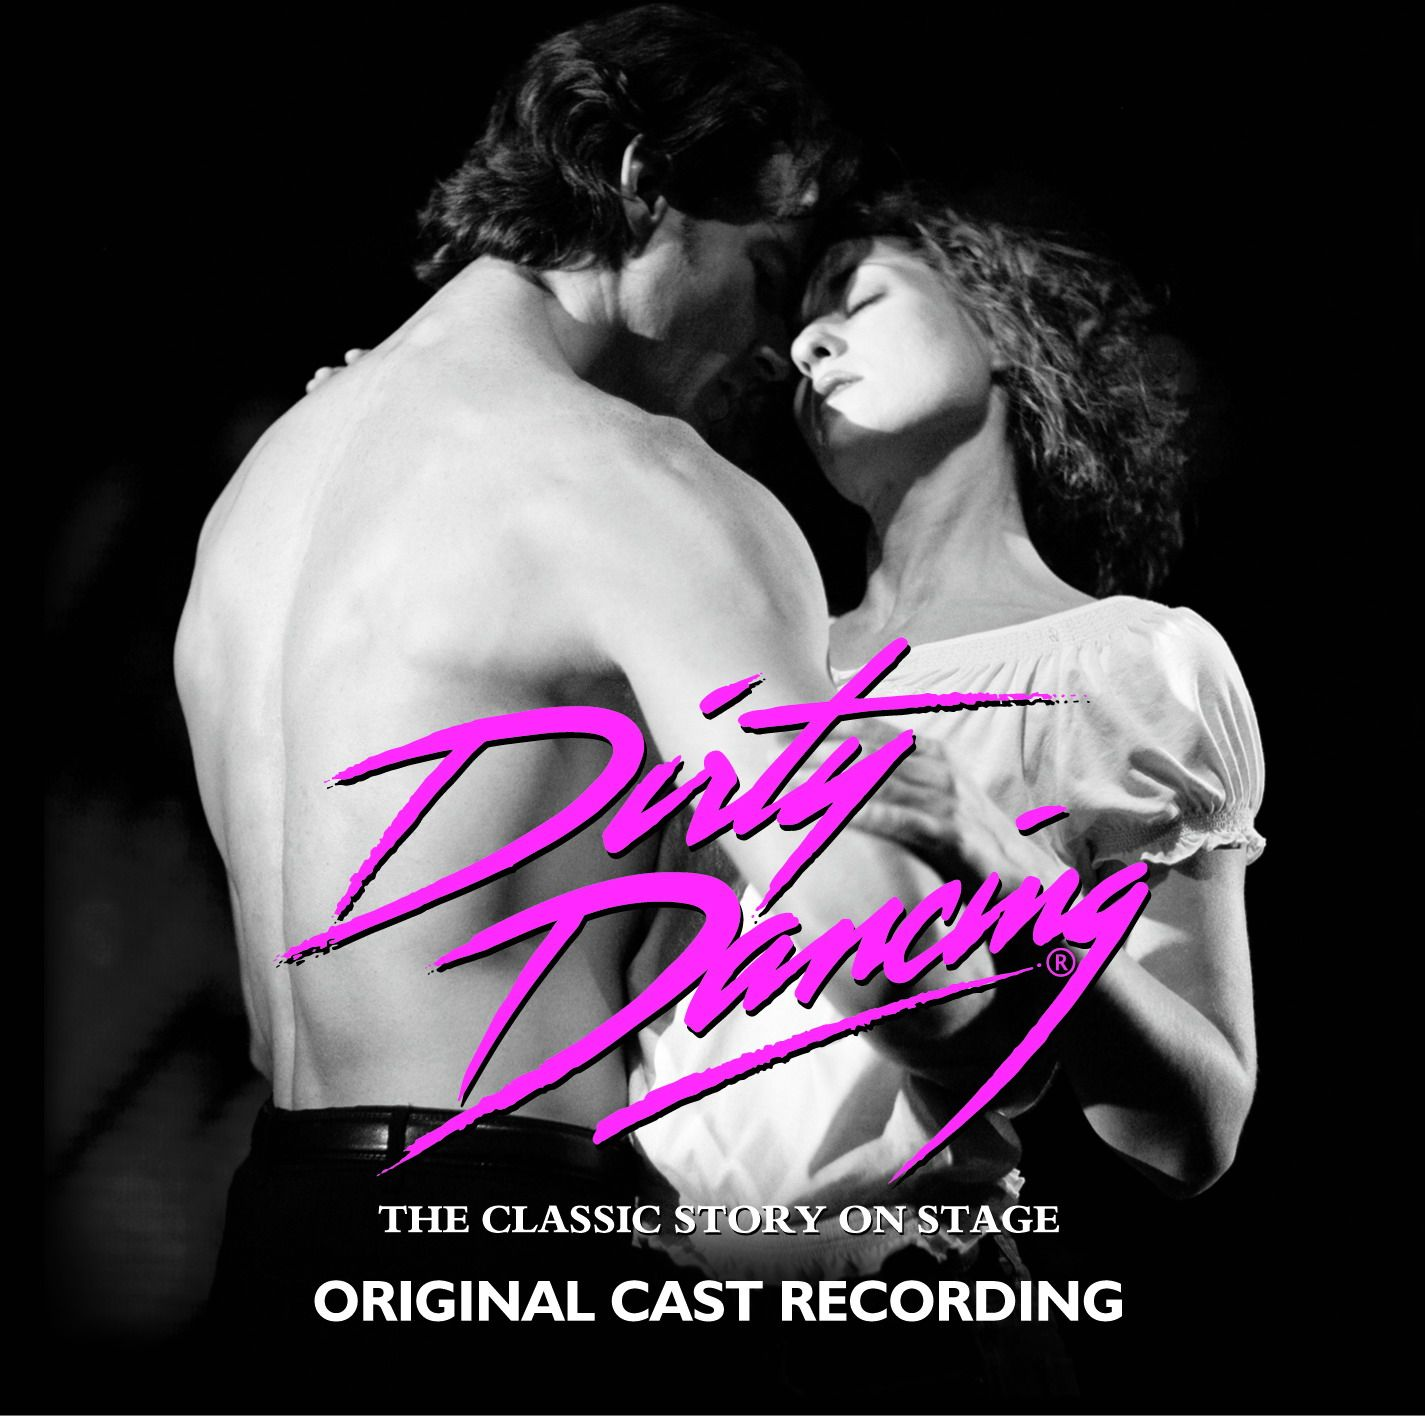 Dirty Dancing, the classic story on stage